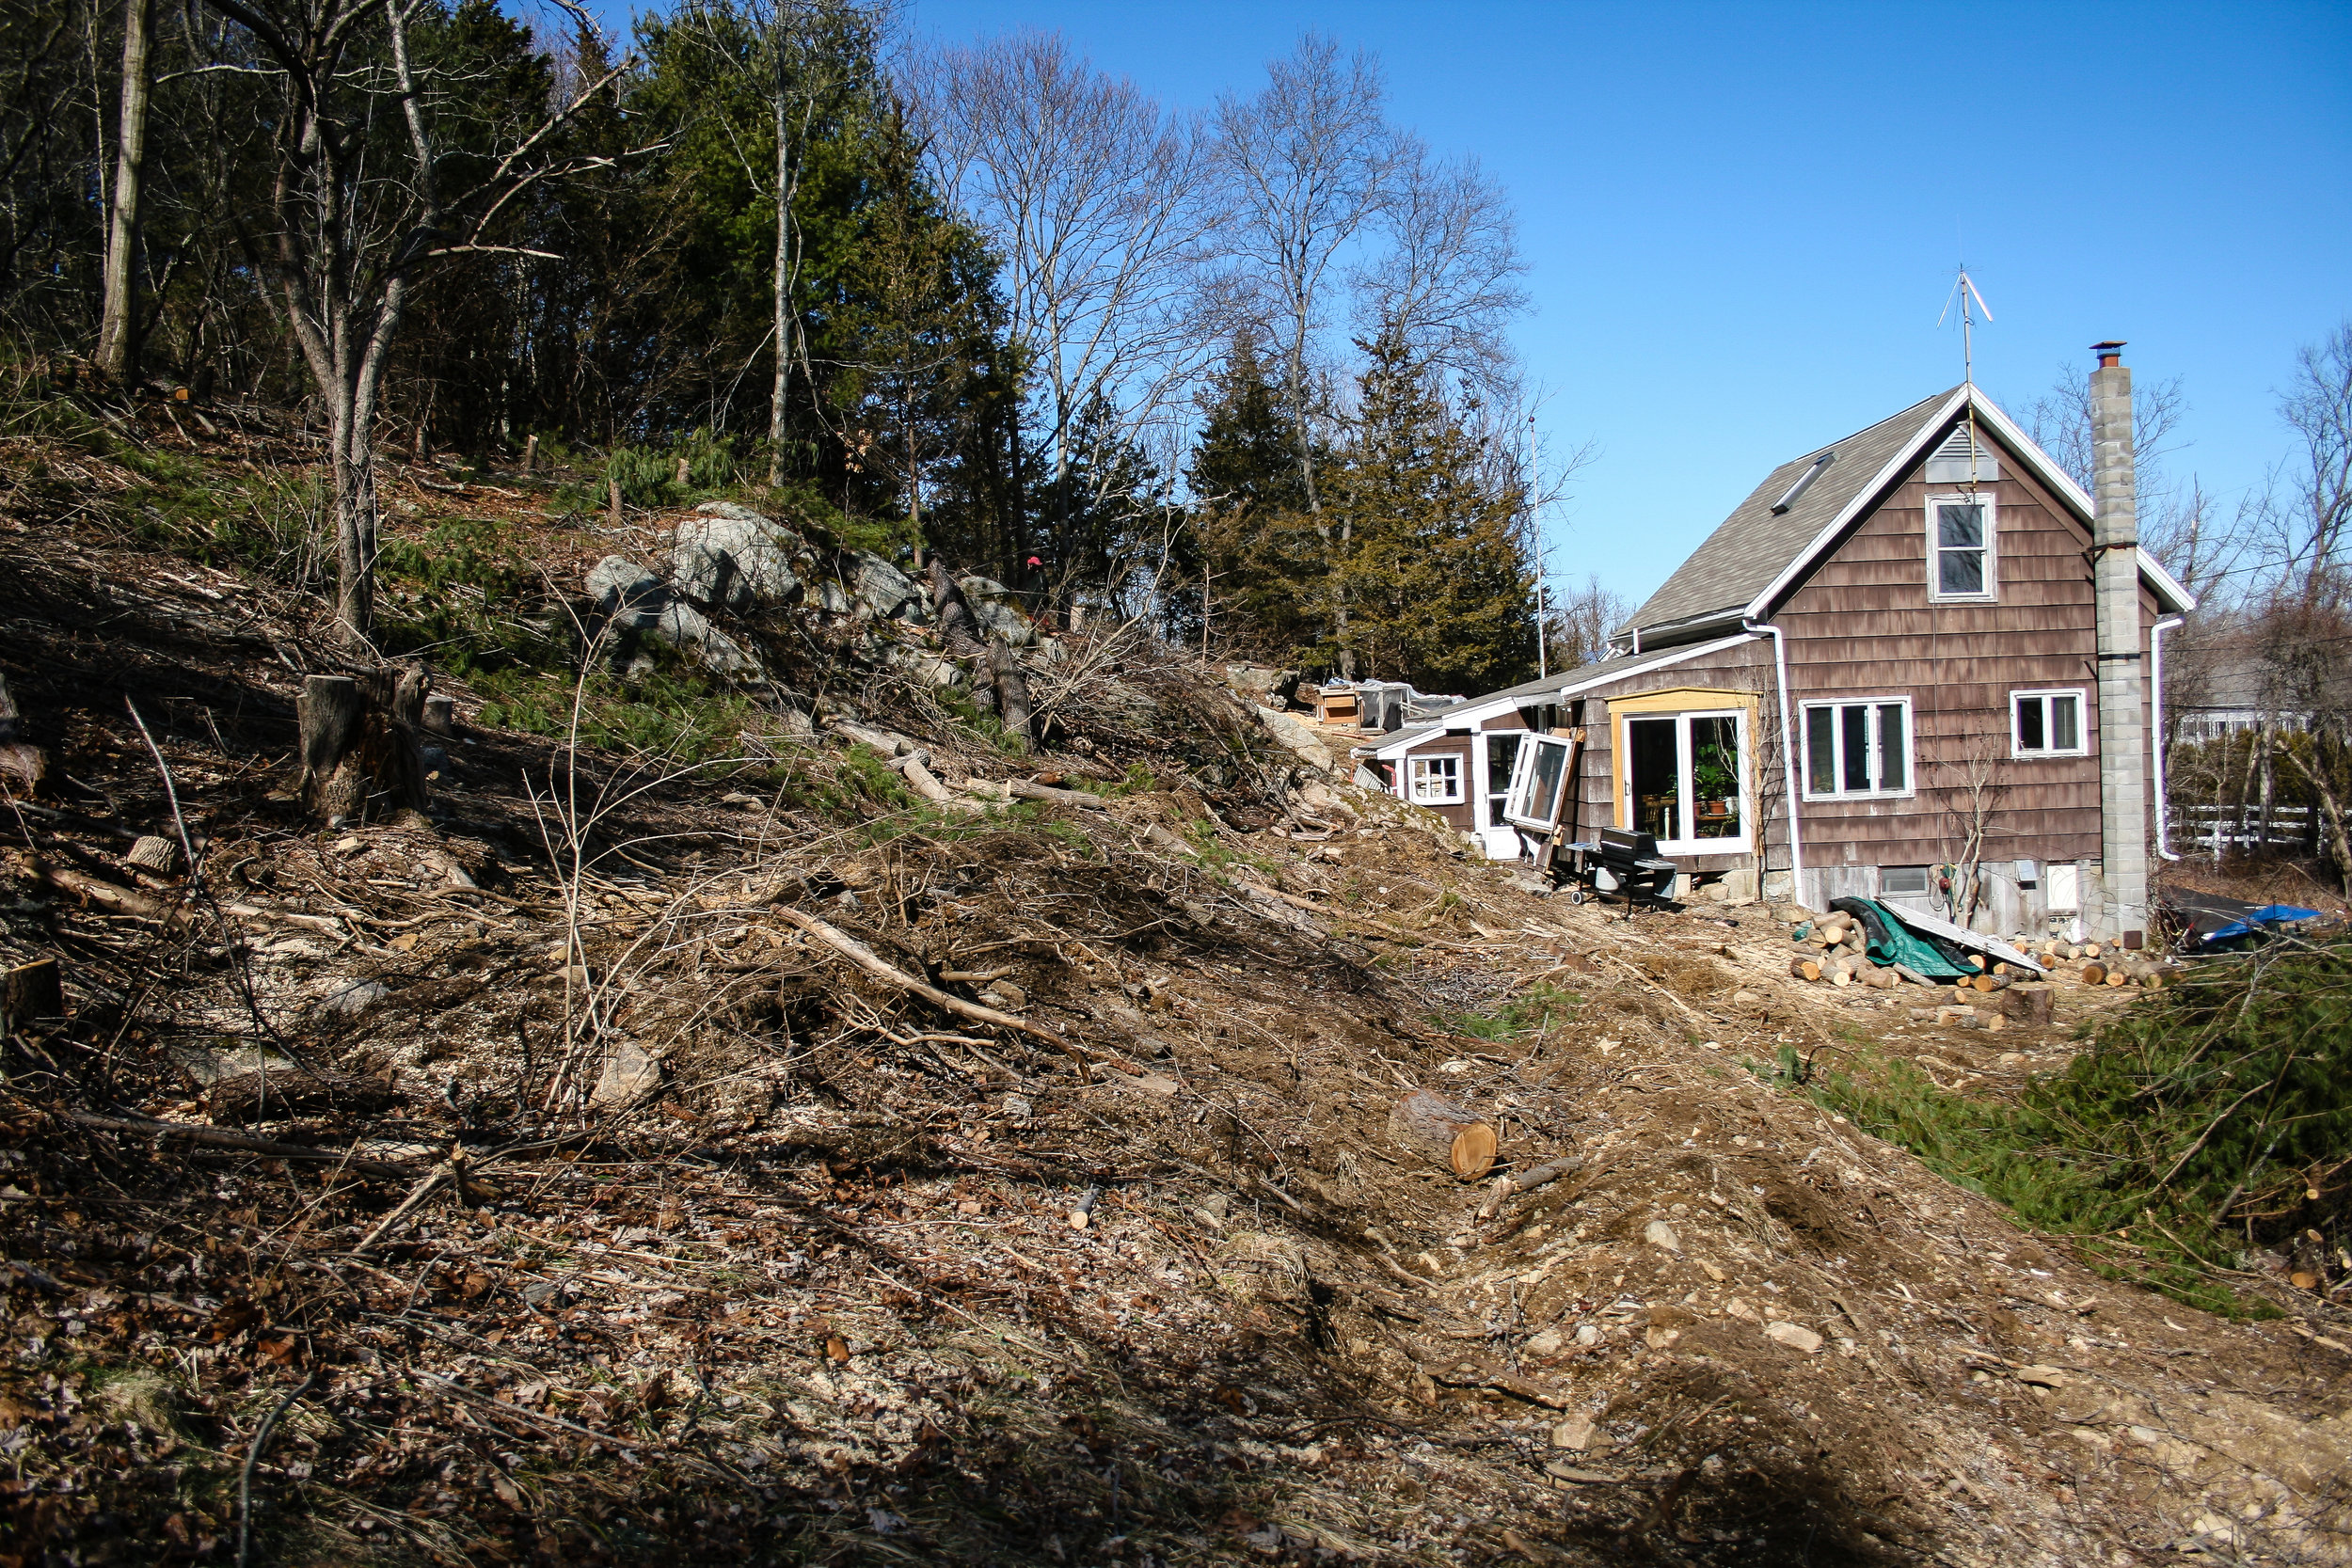 Trees on hillside cleared and swales roughed in